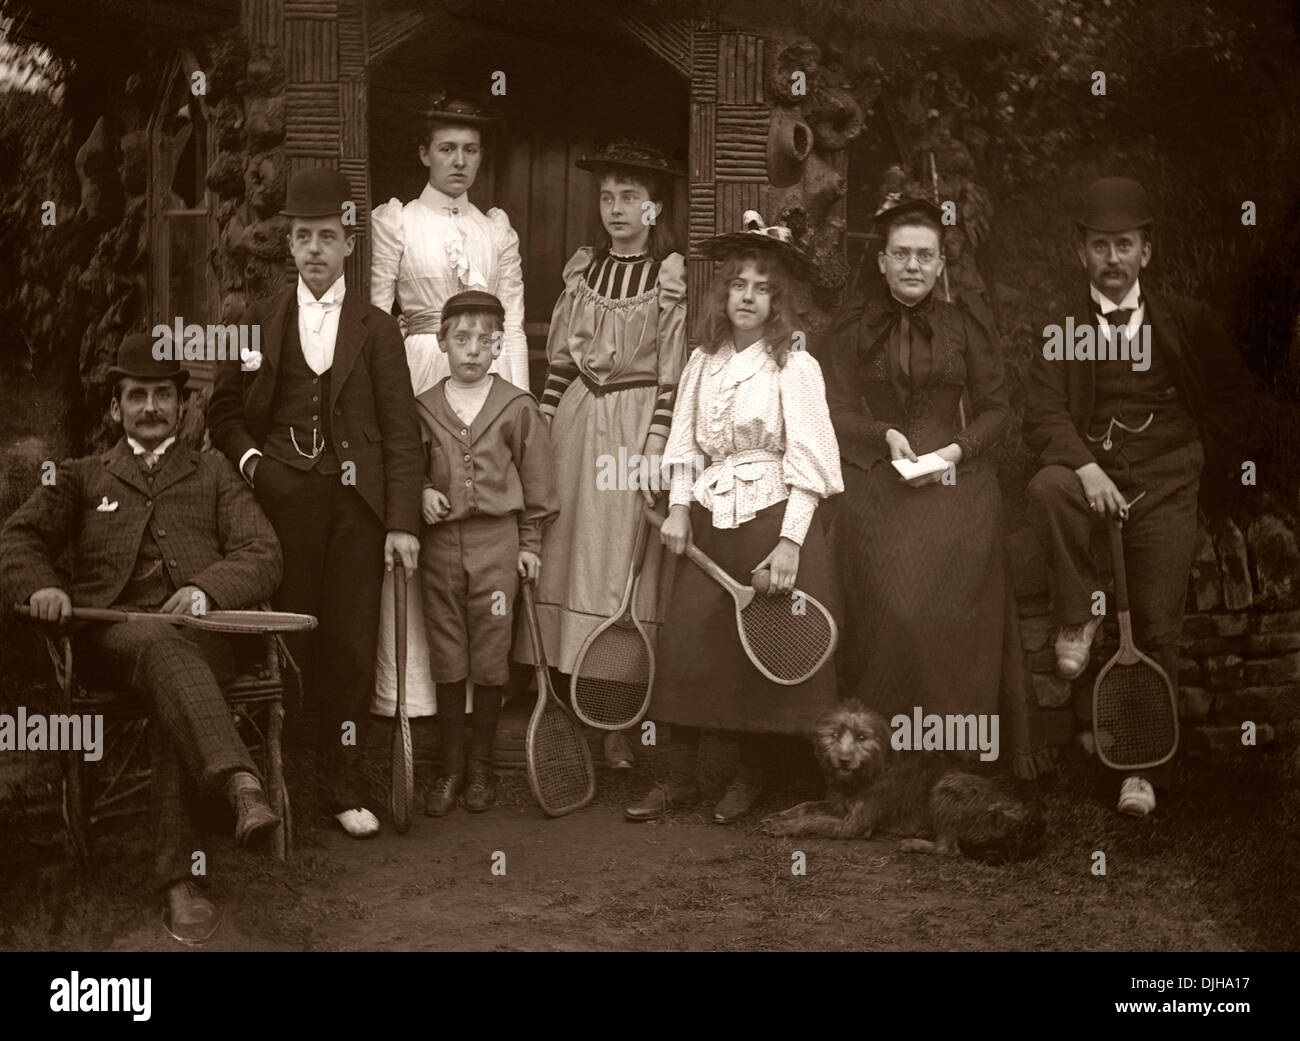 A group of tennis players in the Victorian or Edwardian era c. 1900. They wear smart clothing for playing sport, including hats! - Stock Image